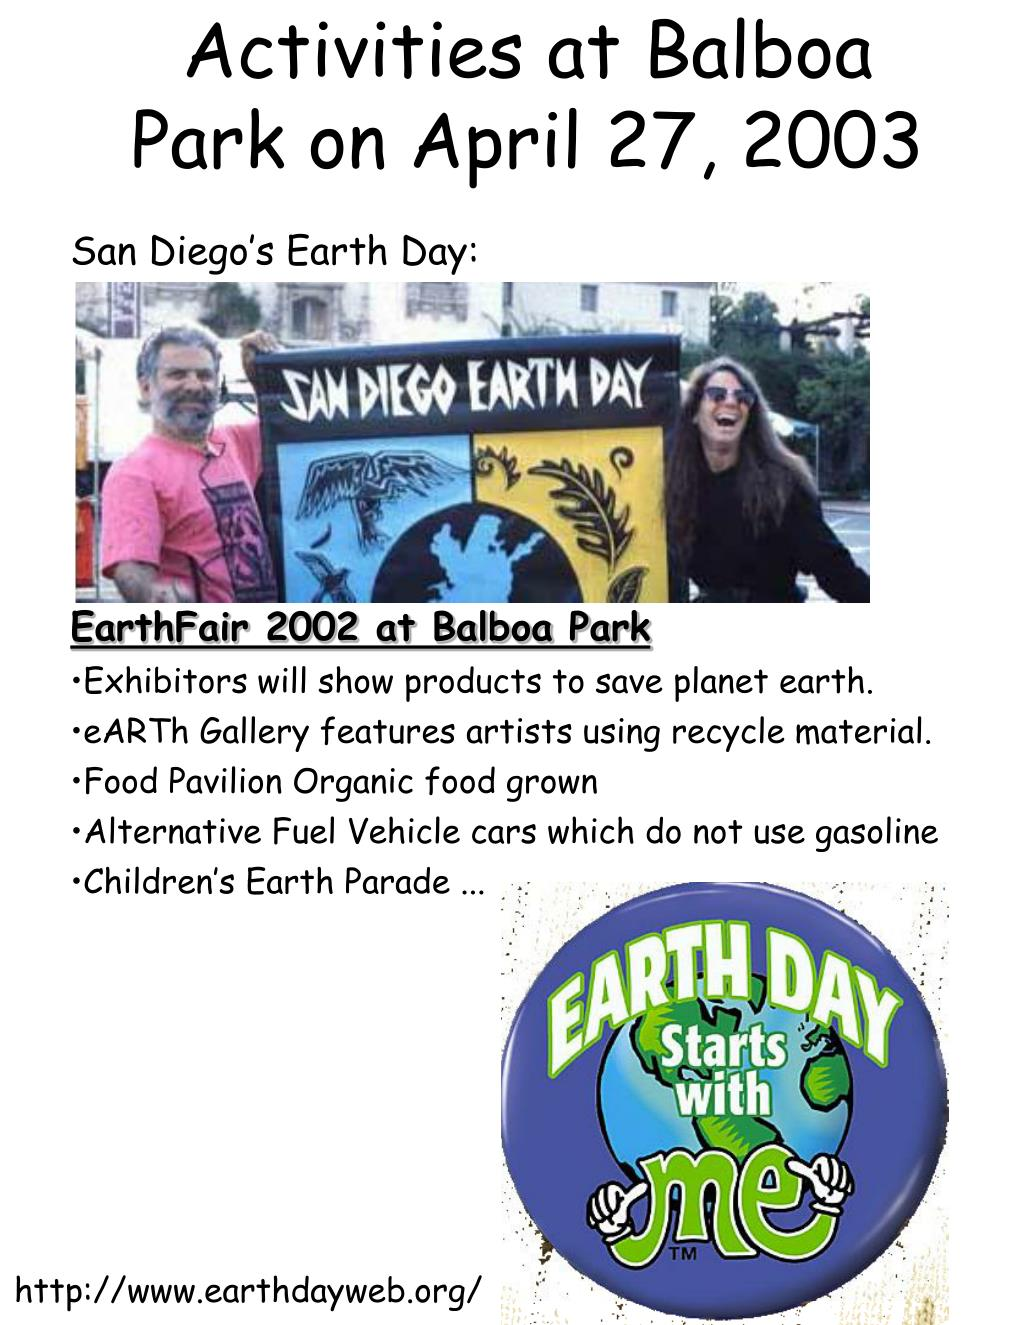 Activities at Balboa Park on April 27, 2003